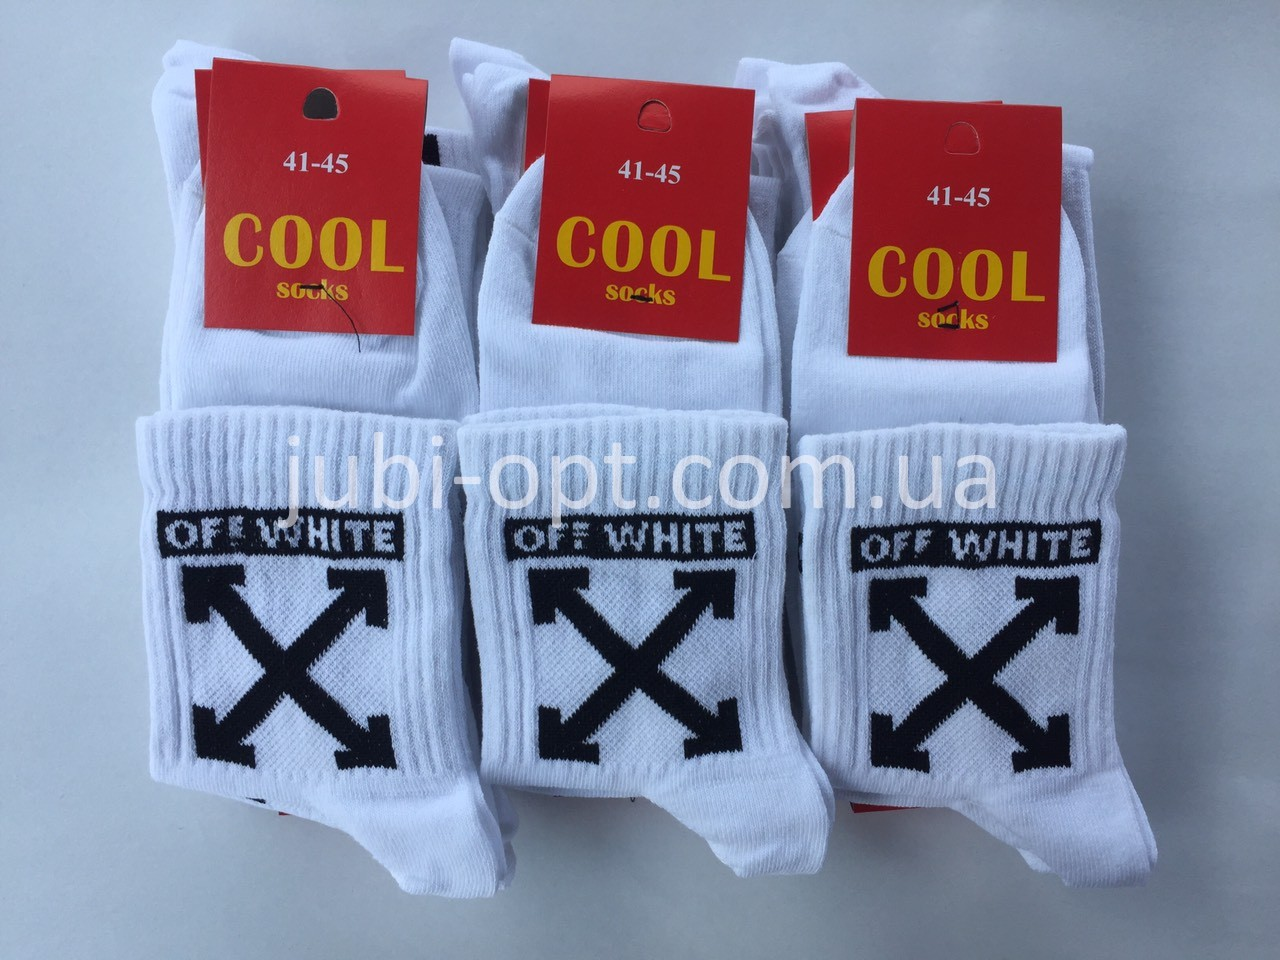 Cool socks 41-45 Off white